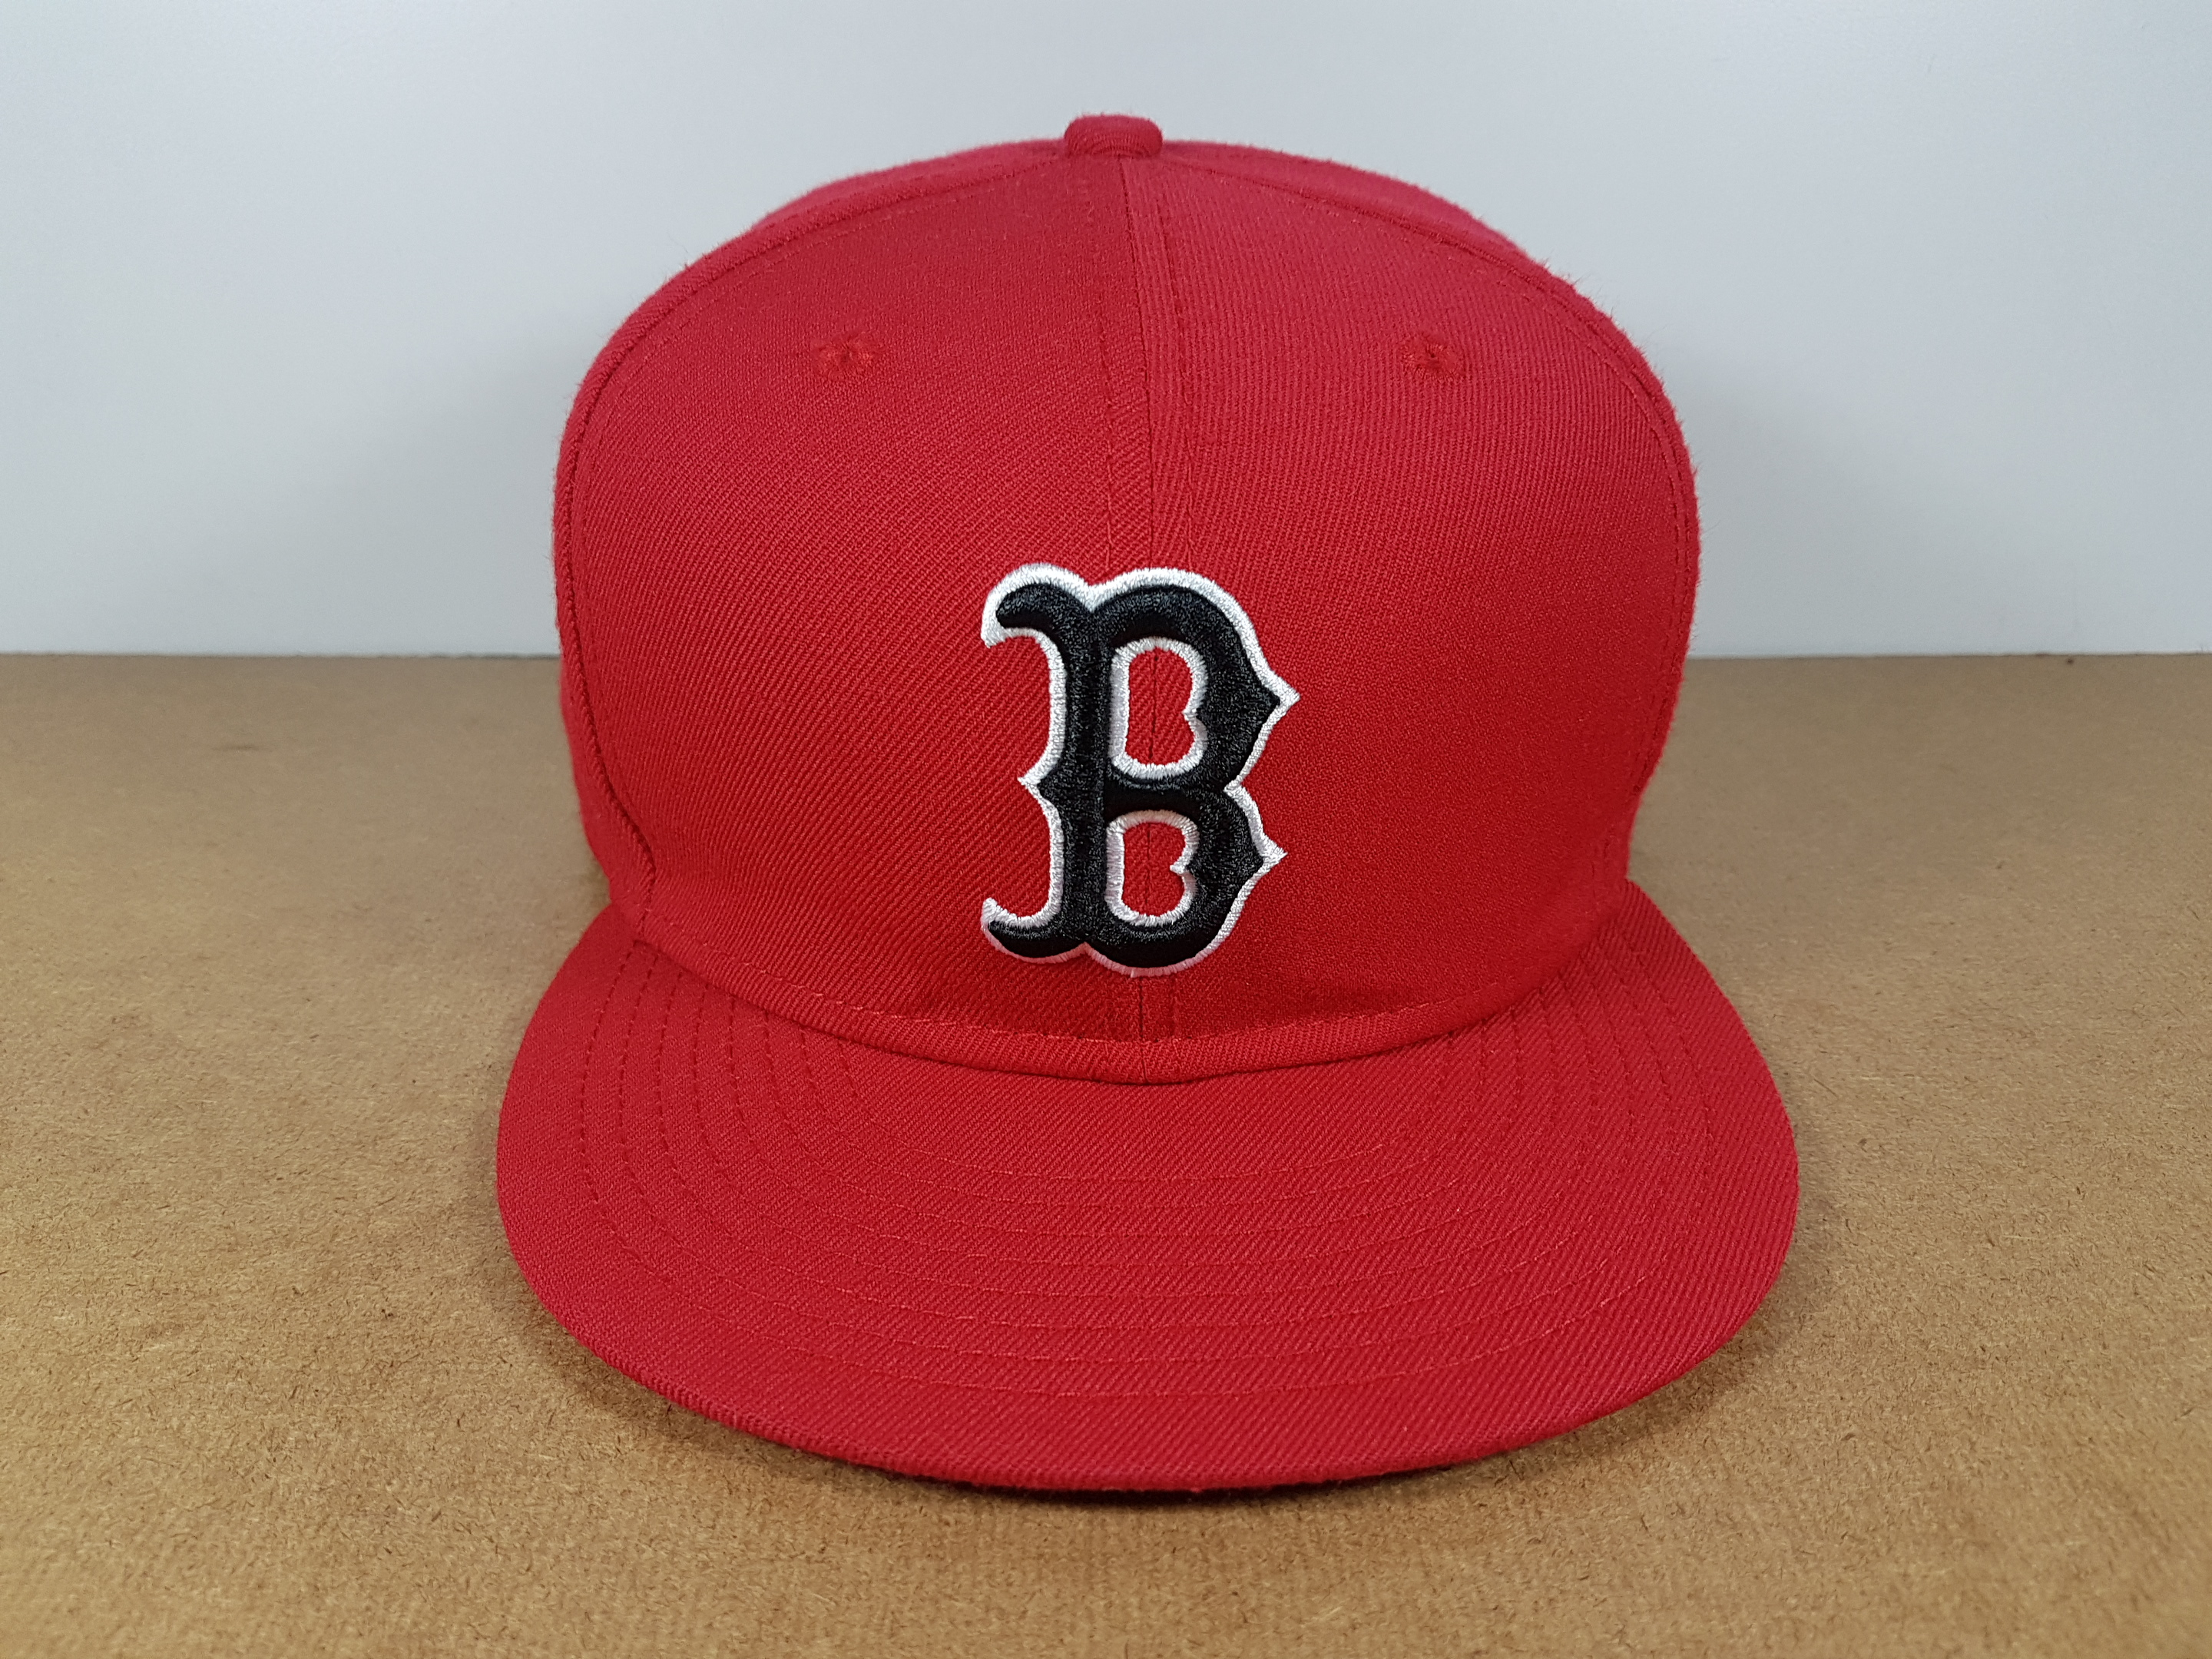 New Era MLB ทีม Boston Redsox ไซส์ 7 5/8 ( 60.6cm)